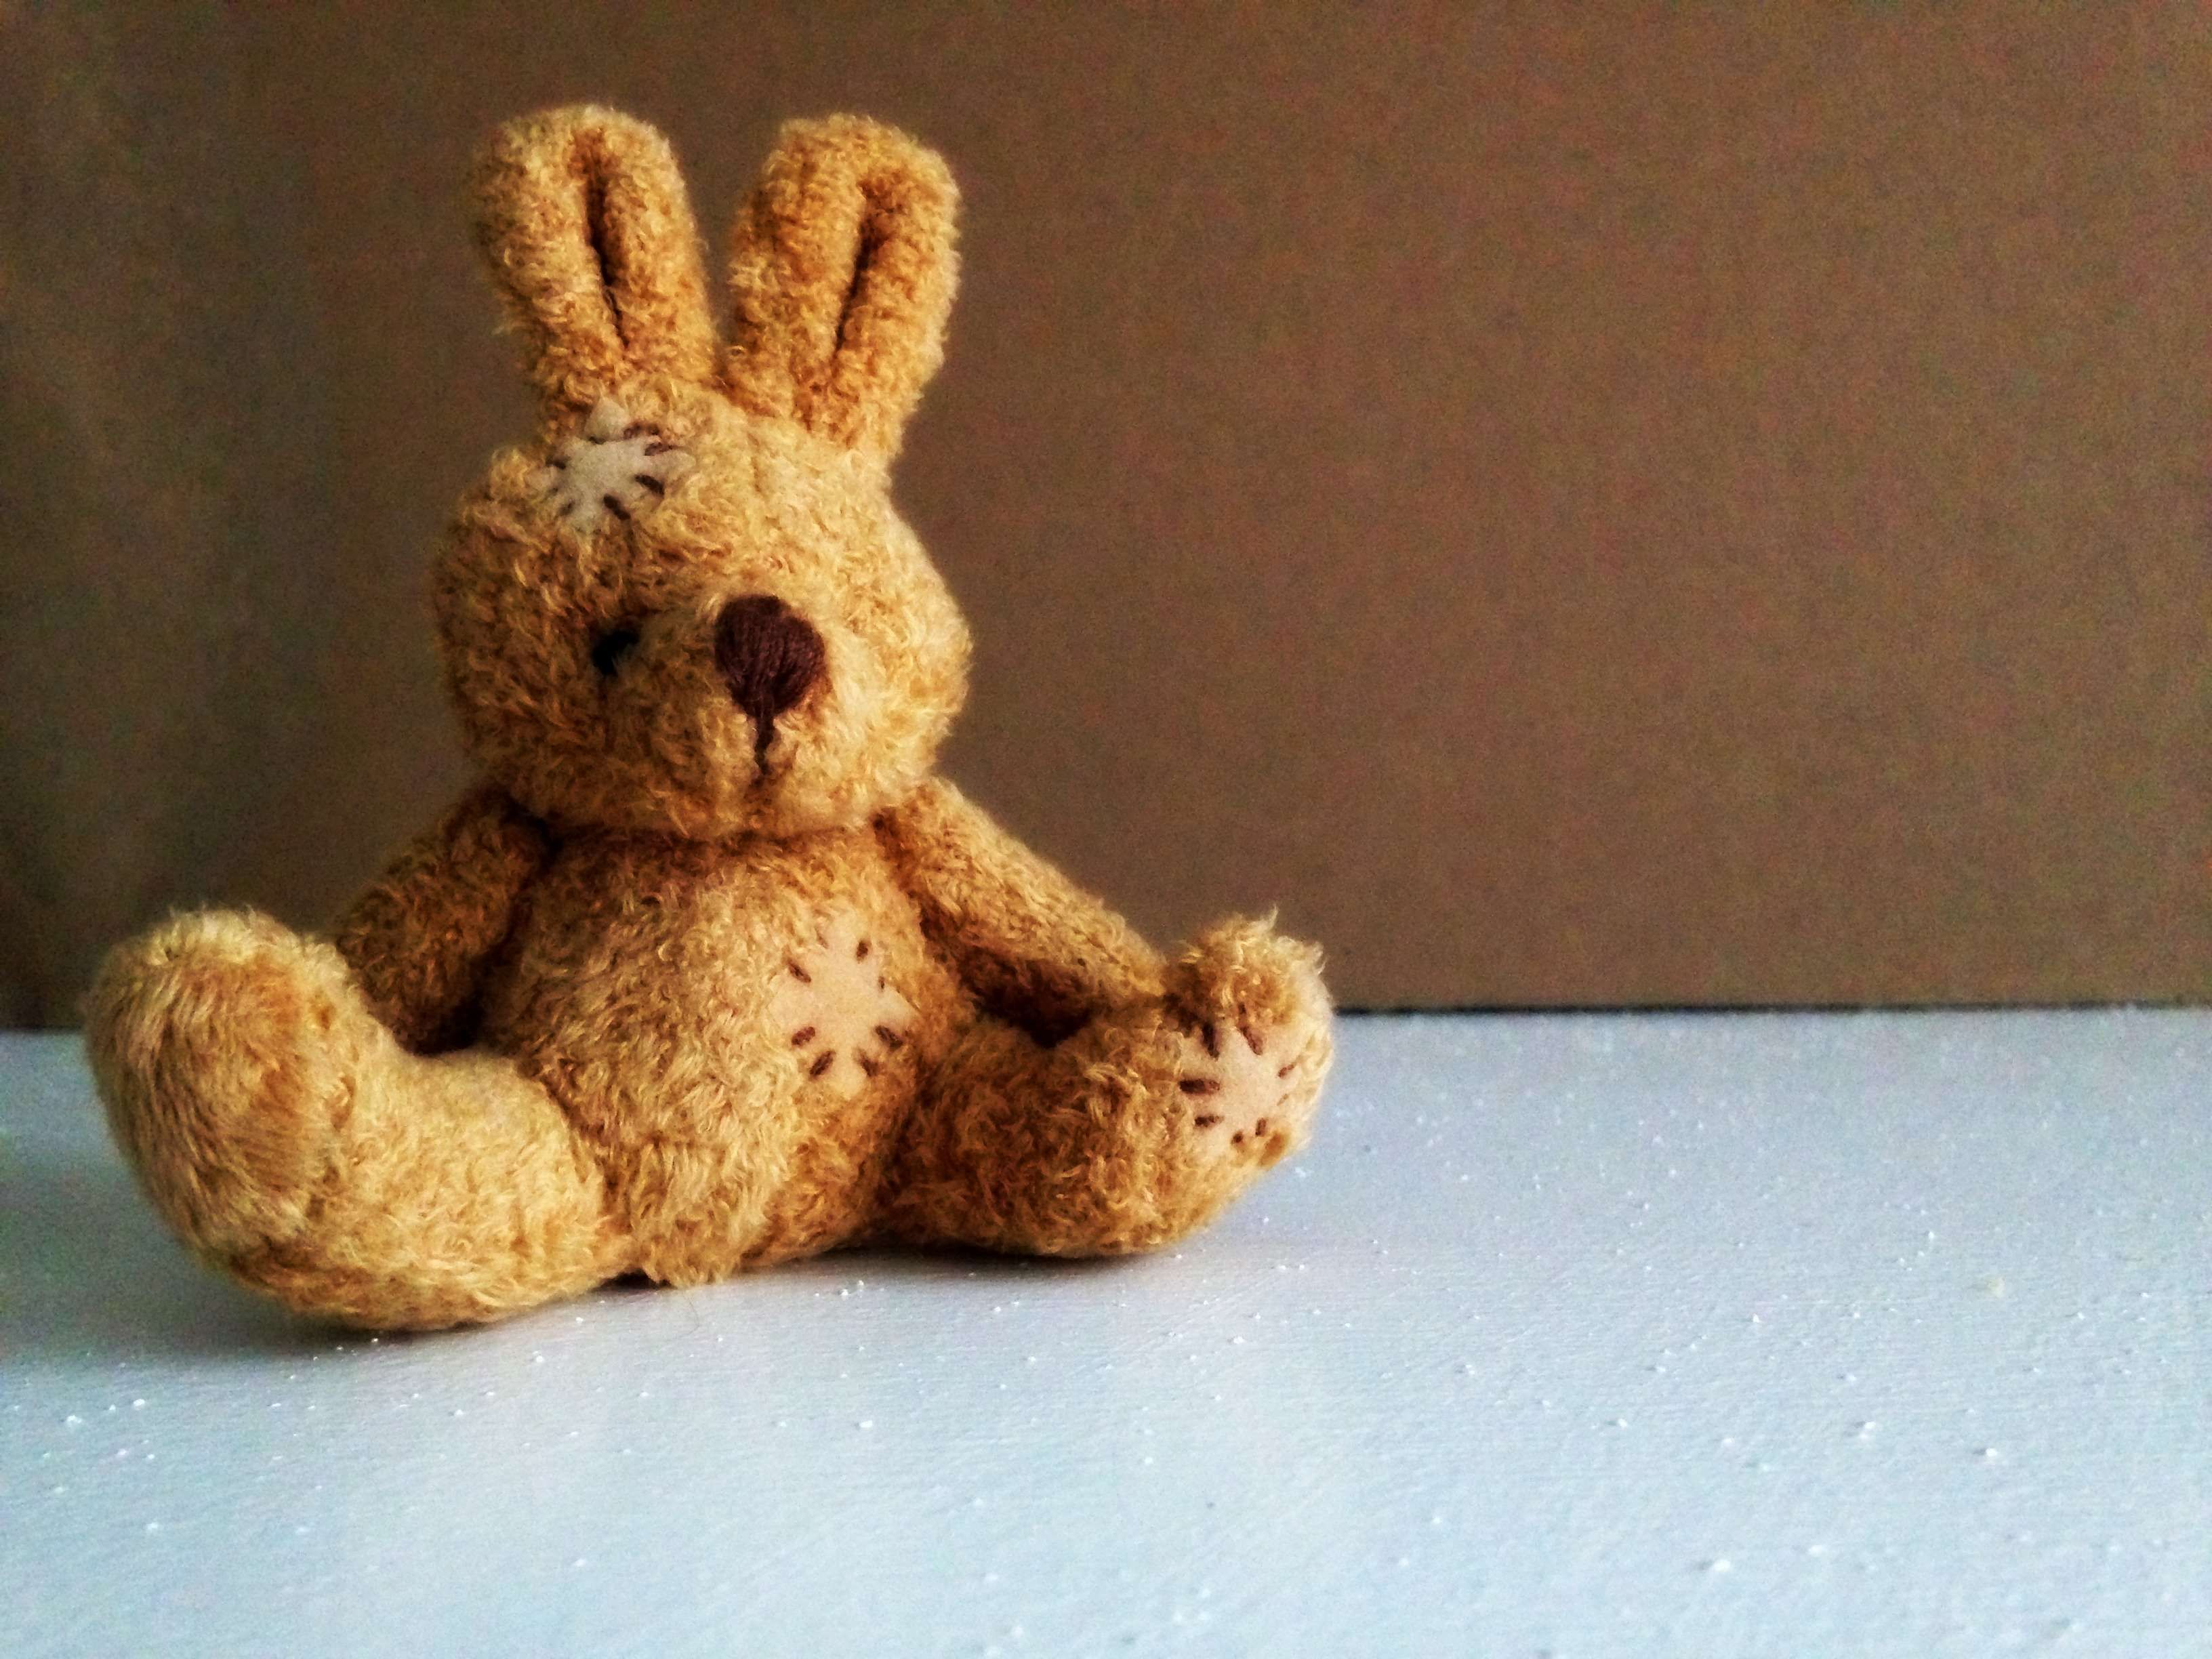 #abstract #furry #rabbit #toy